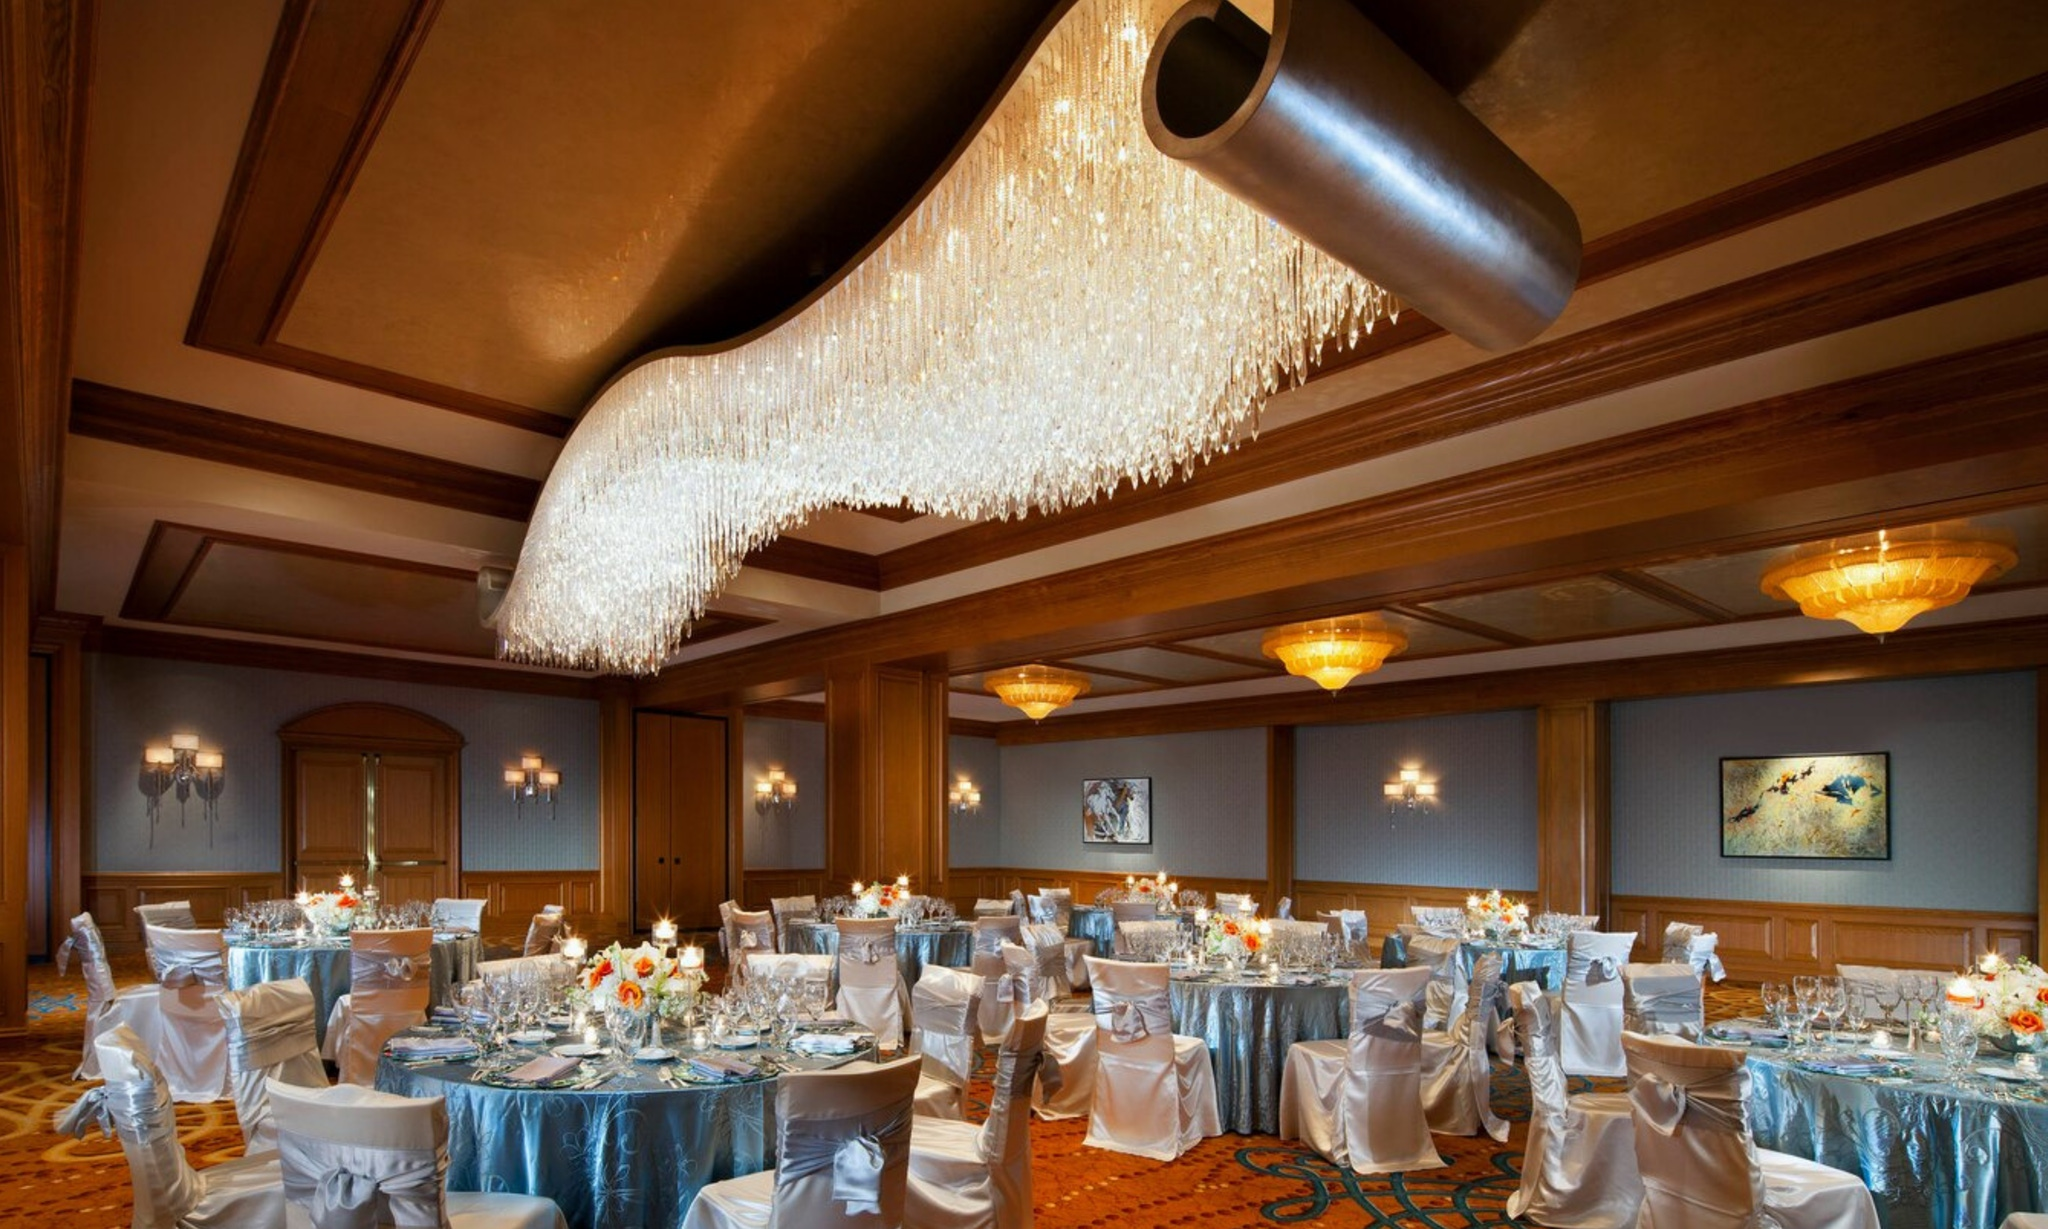 Crystal chandeliers and silver table setting at St. Regis Houston